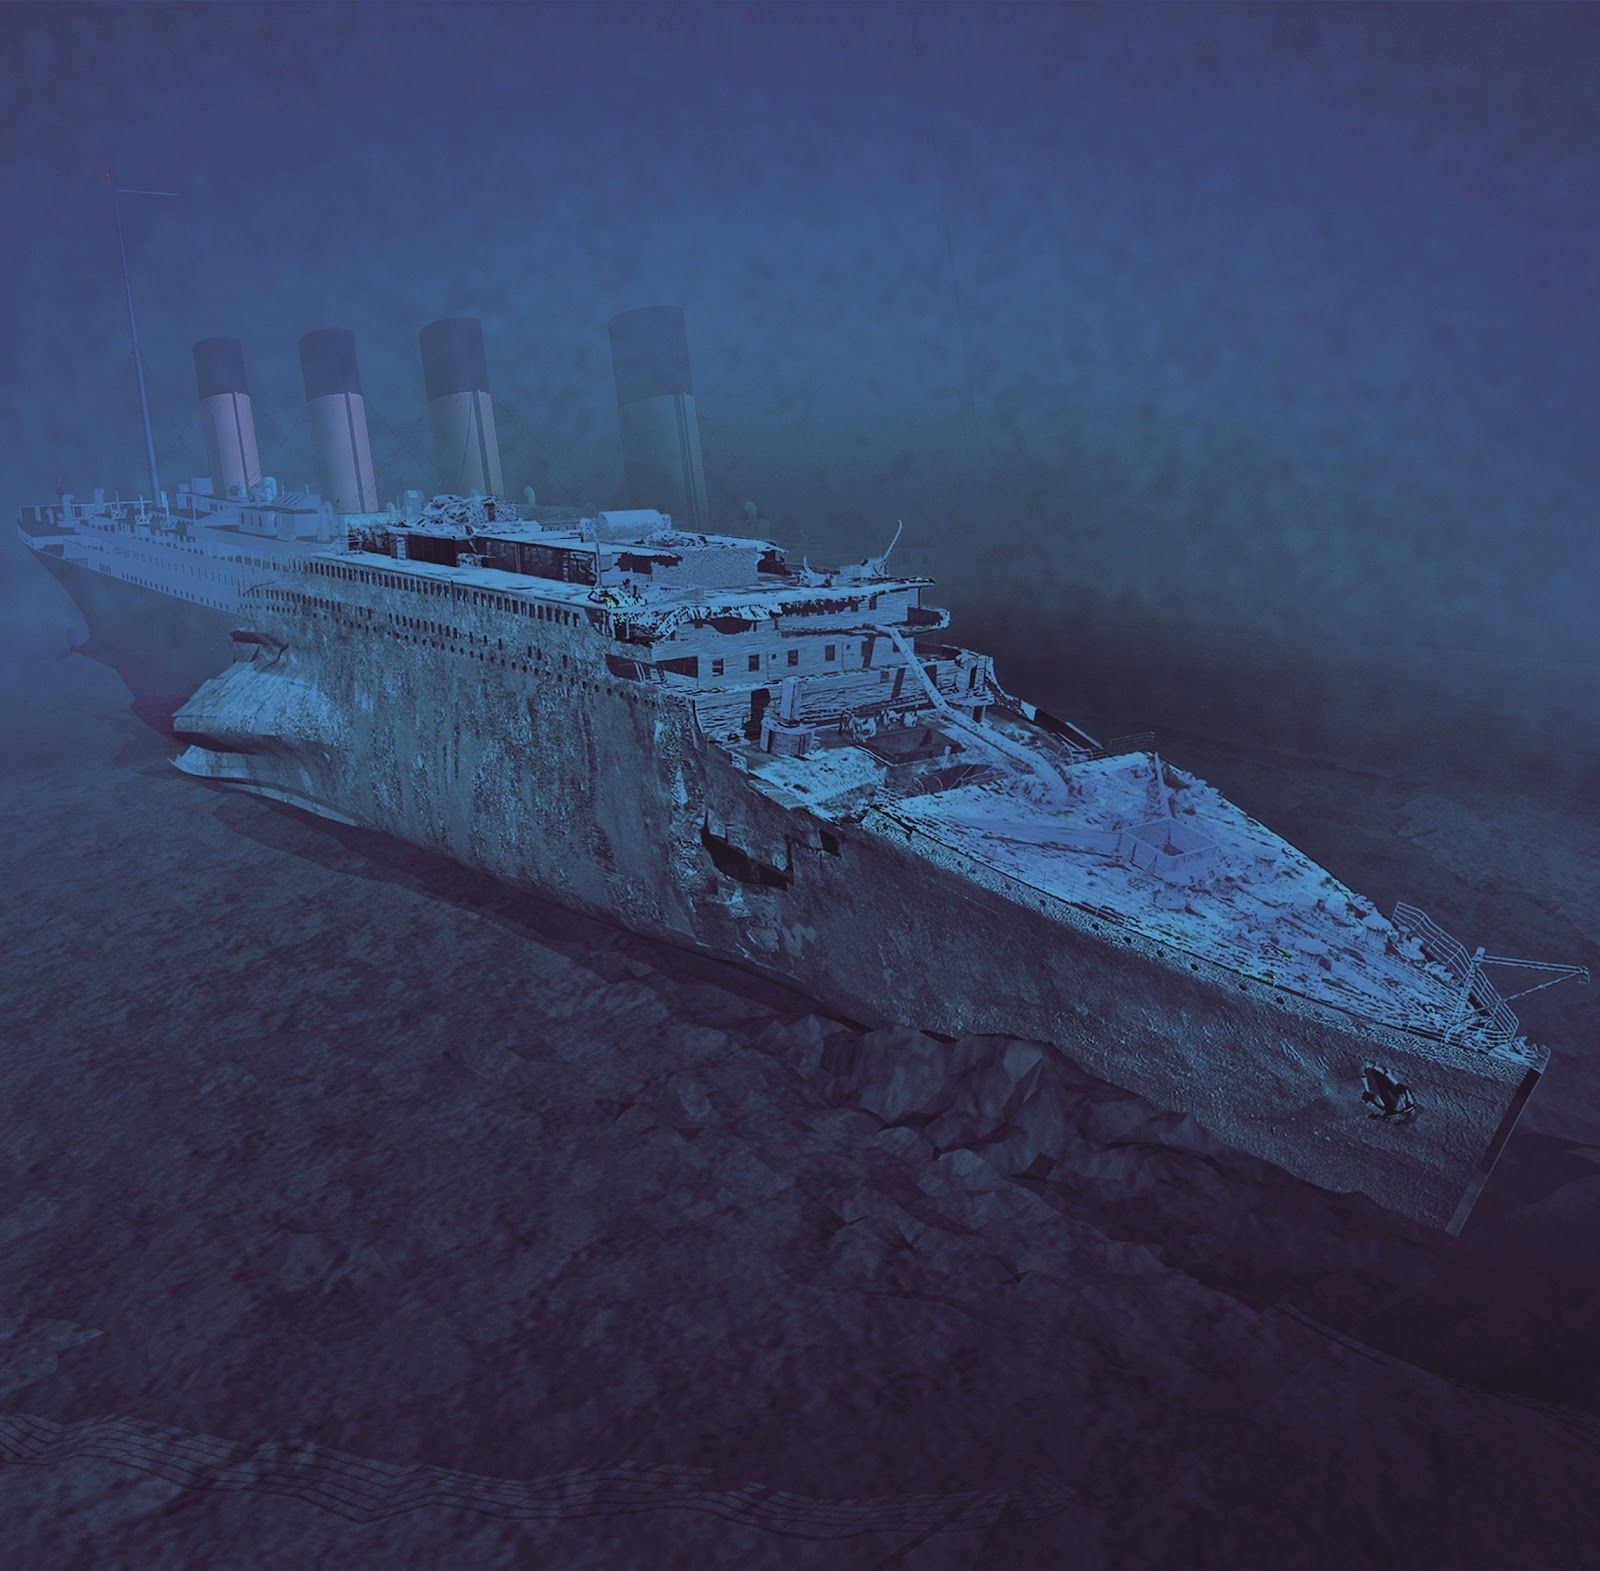 the event of the sinking of the titanic At the time, the titanic was the largest passenger liner in the world it sailed on its maiden voyage, carrying a lot of very famous people, and sank.